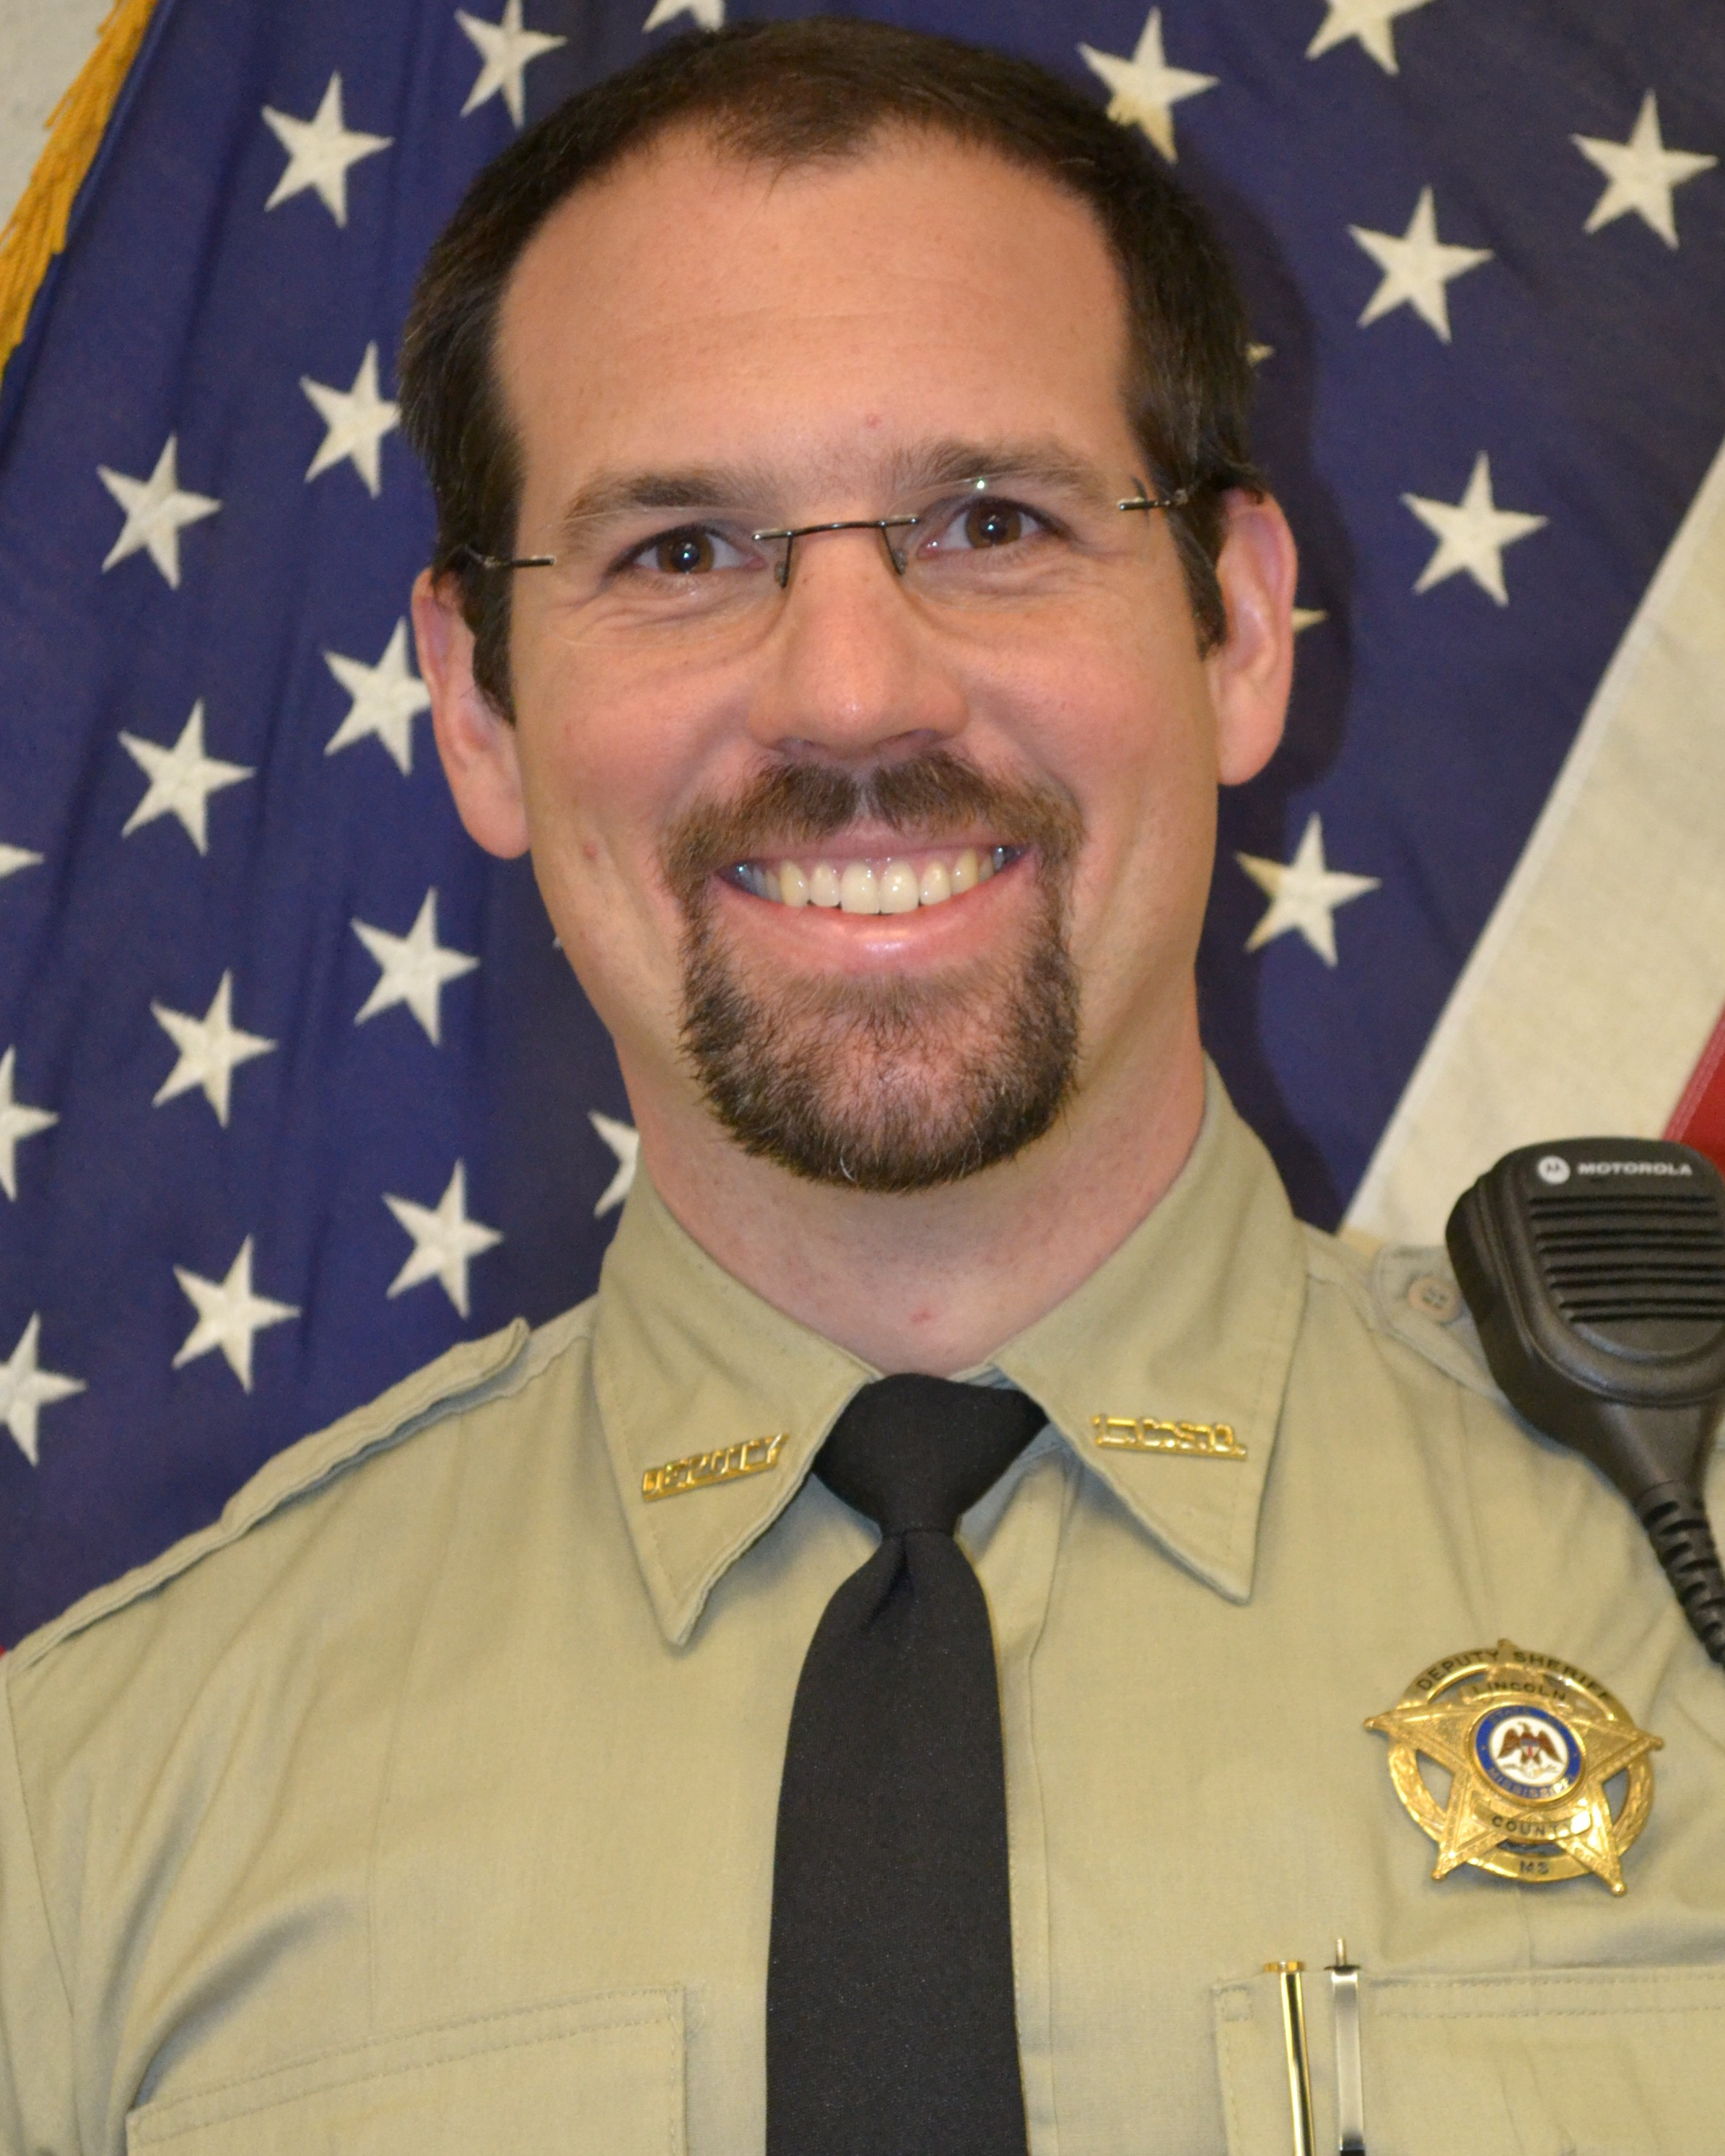 Deputy Sheriff Donald William Durr | Lincoln County Sheriff's Office, Mississippi